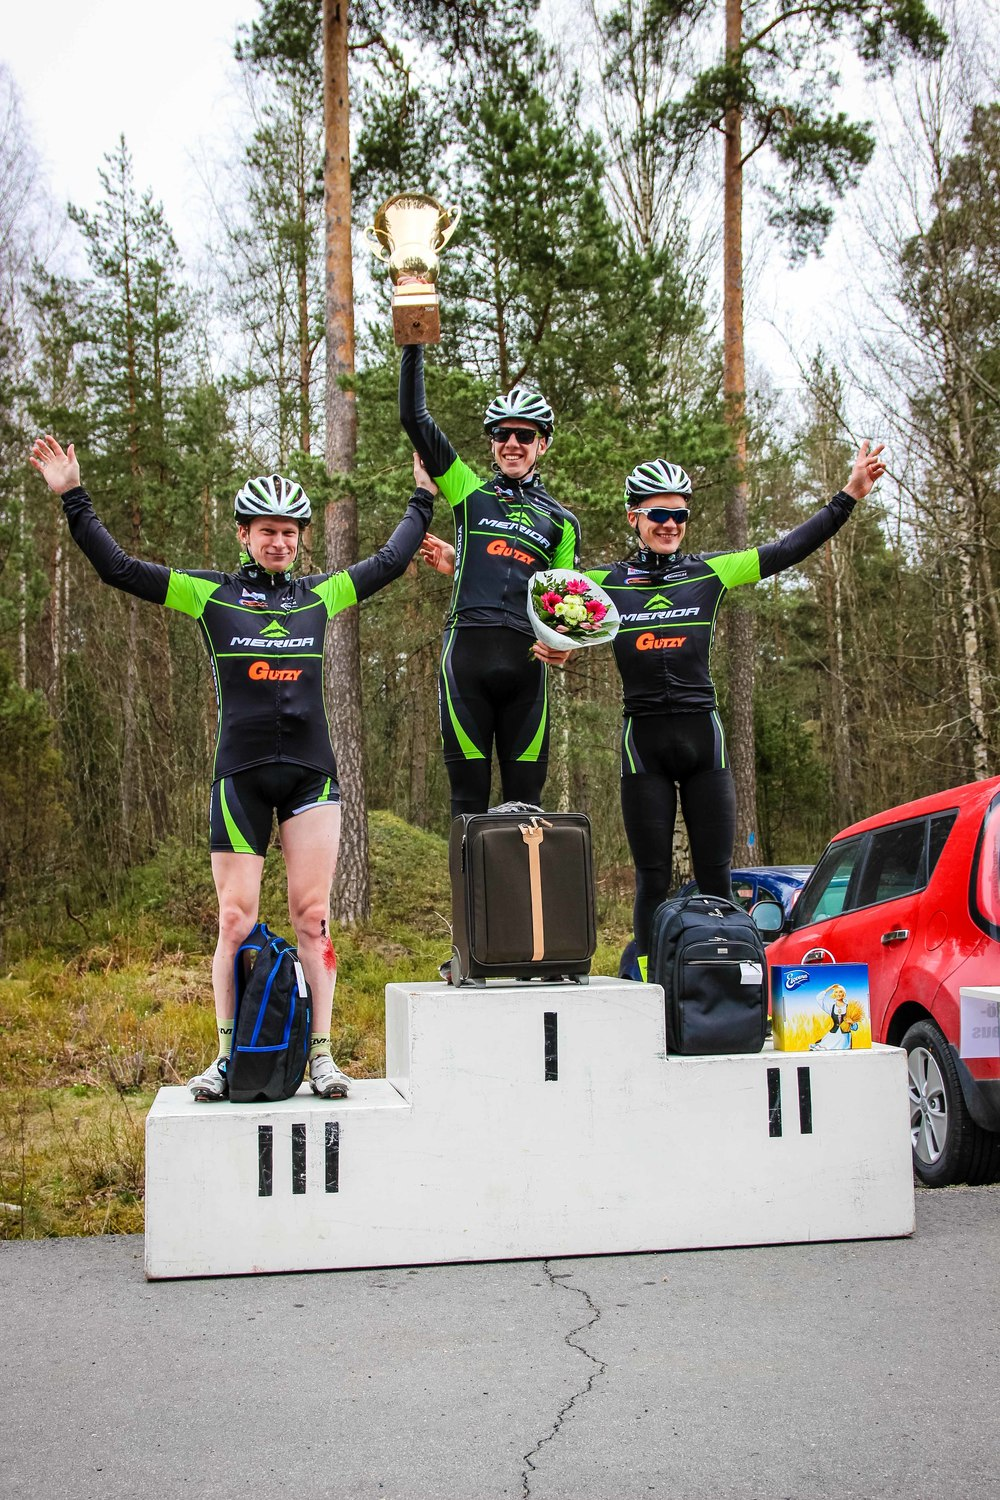 Elite podium, Sami Tiainen (3rd), Ben Carman (1st) and Roope Nurmi (2nd)